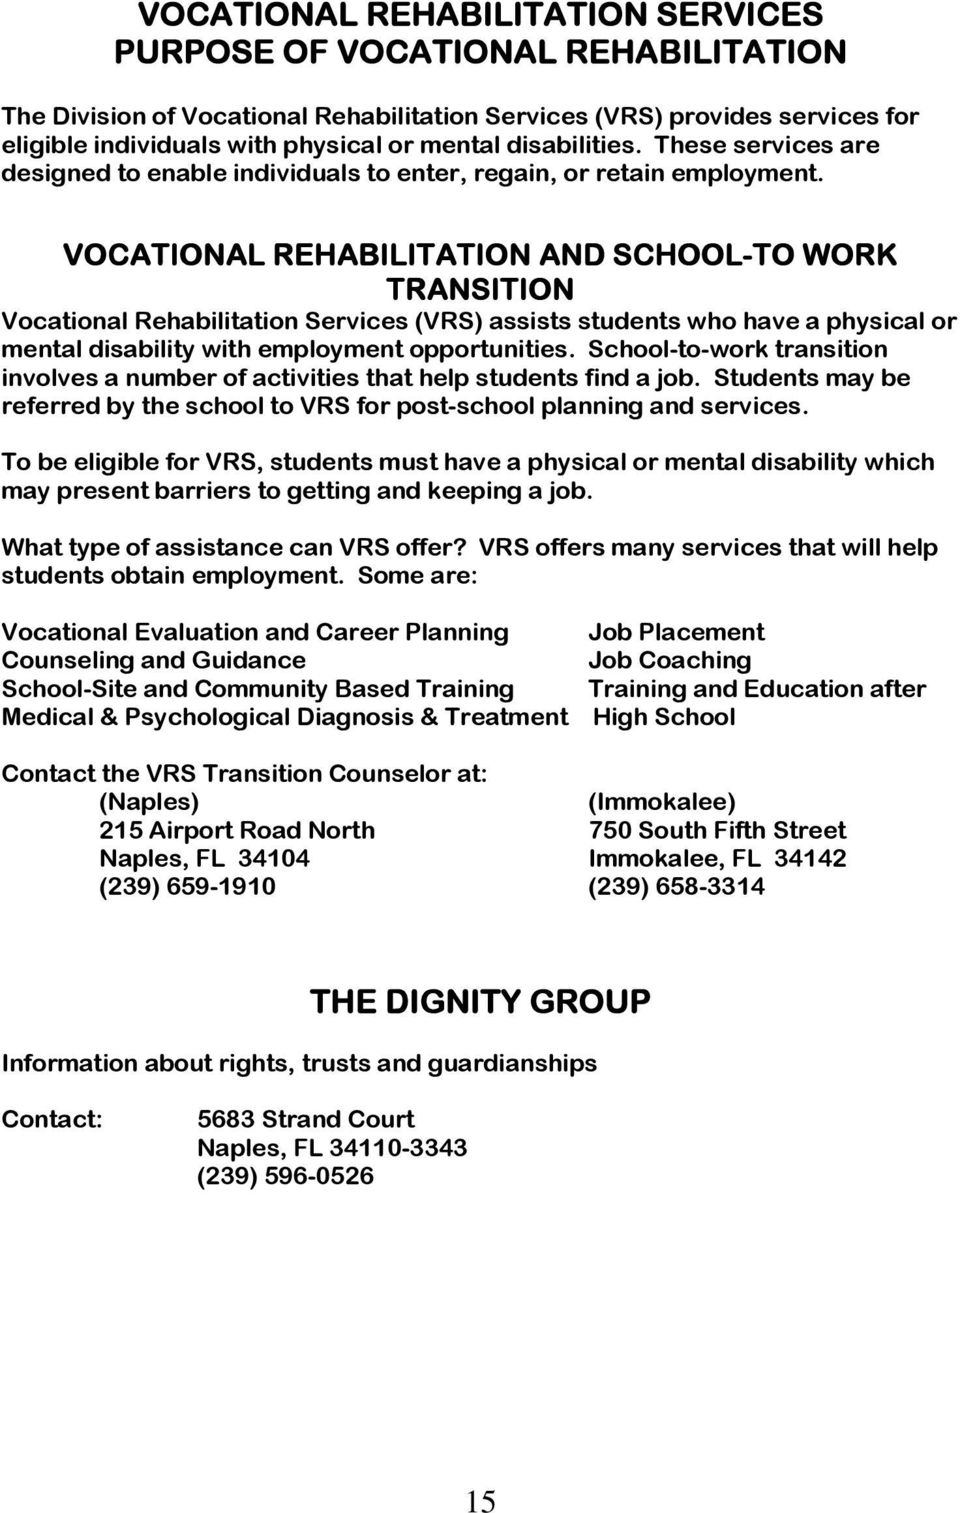 VOCATIONAL REHABILITATION AND SCHOOL-TO WORK TRANSITION Vocational Rehabilitation Services (VRS) assists students who have a physical or mental disability with employment opportunities.